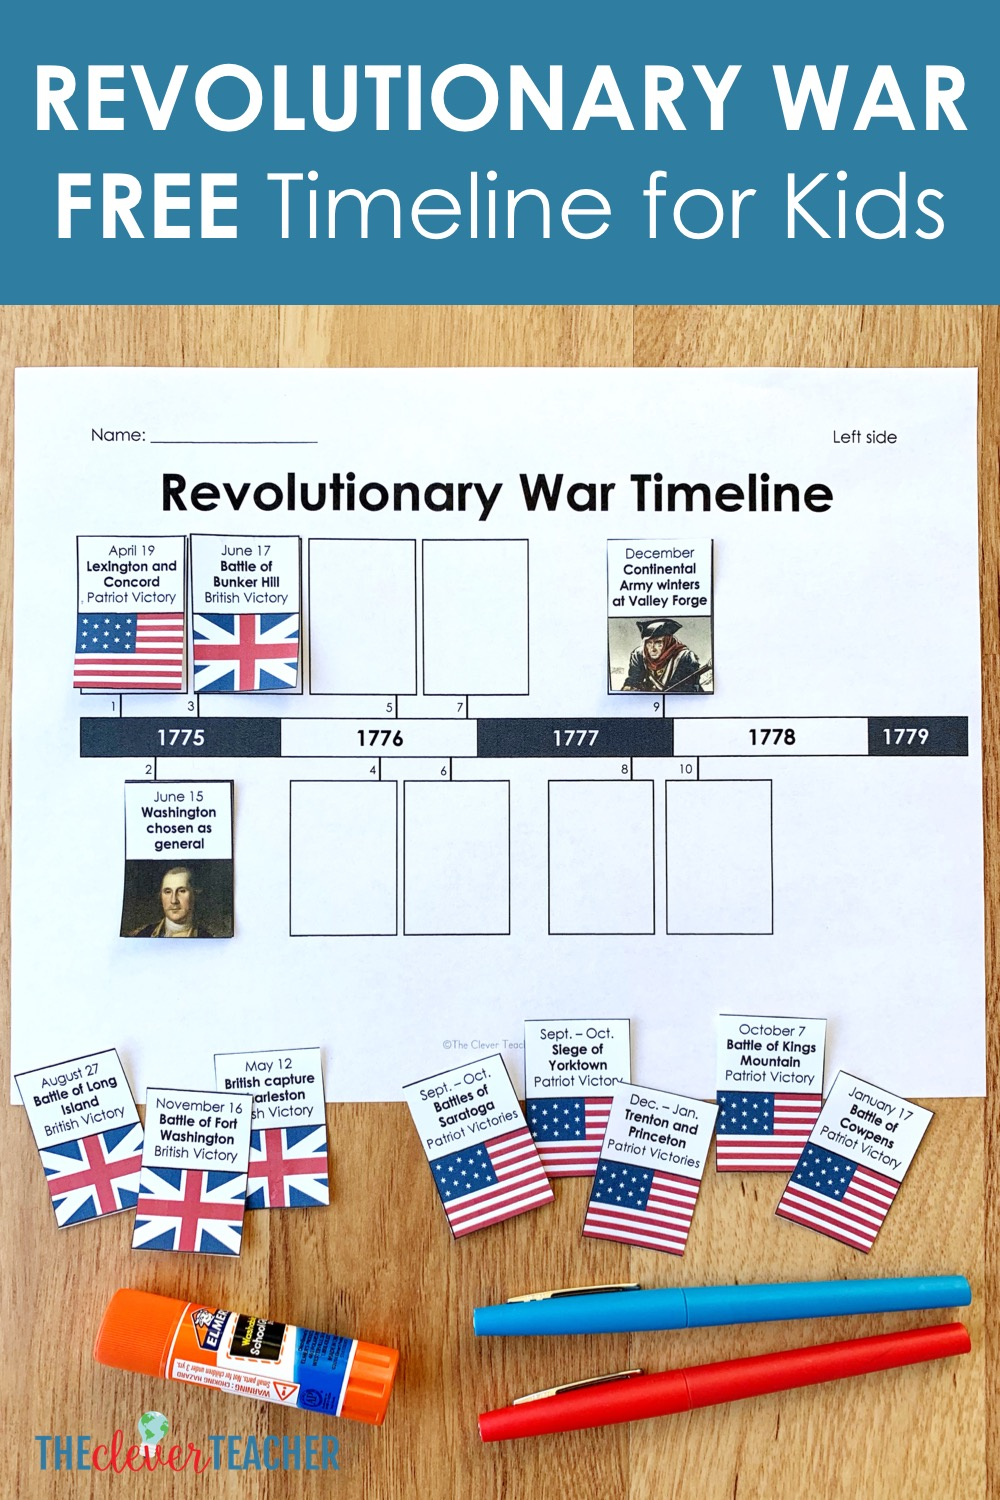 Revolutionary War Timeline For Kids Free From The Clever Teacher